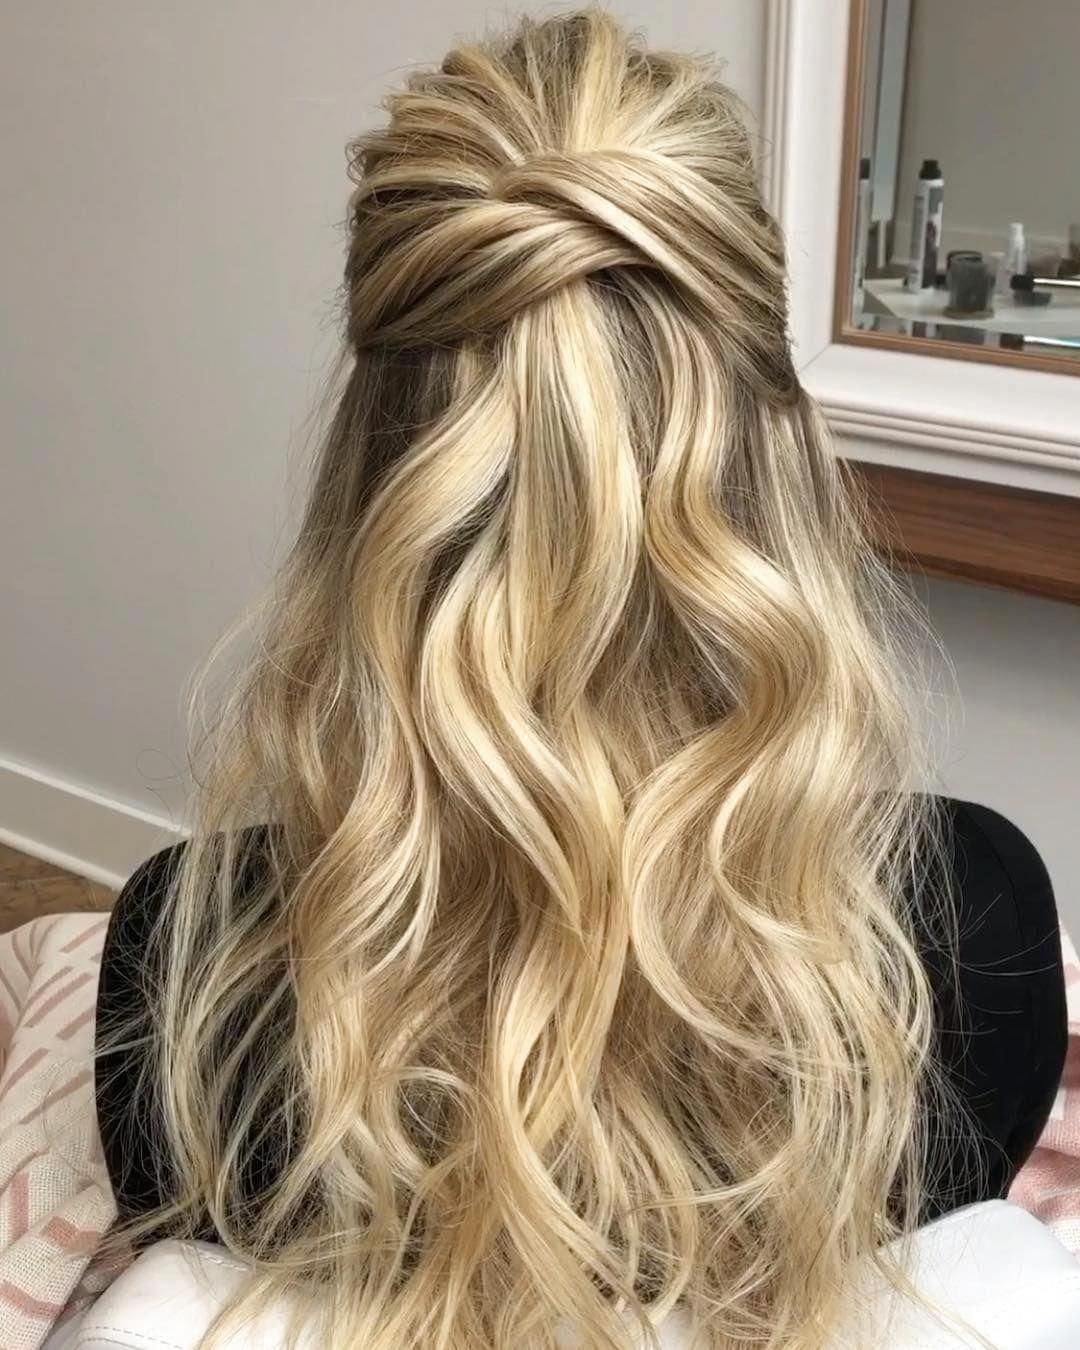 27 Prettiest Half Up Half Down Prom Hairstyles for 2019 - Style My Hairs